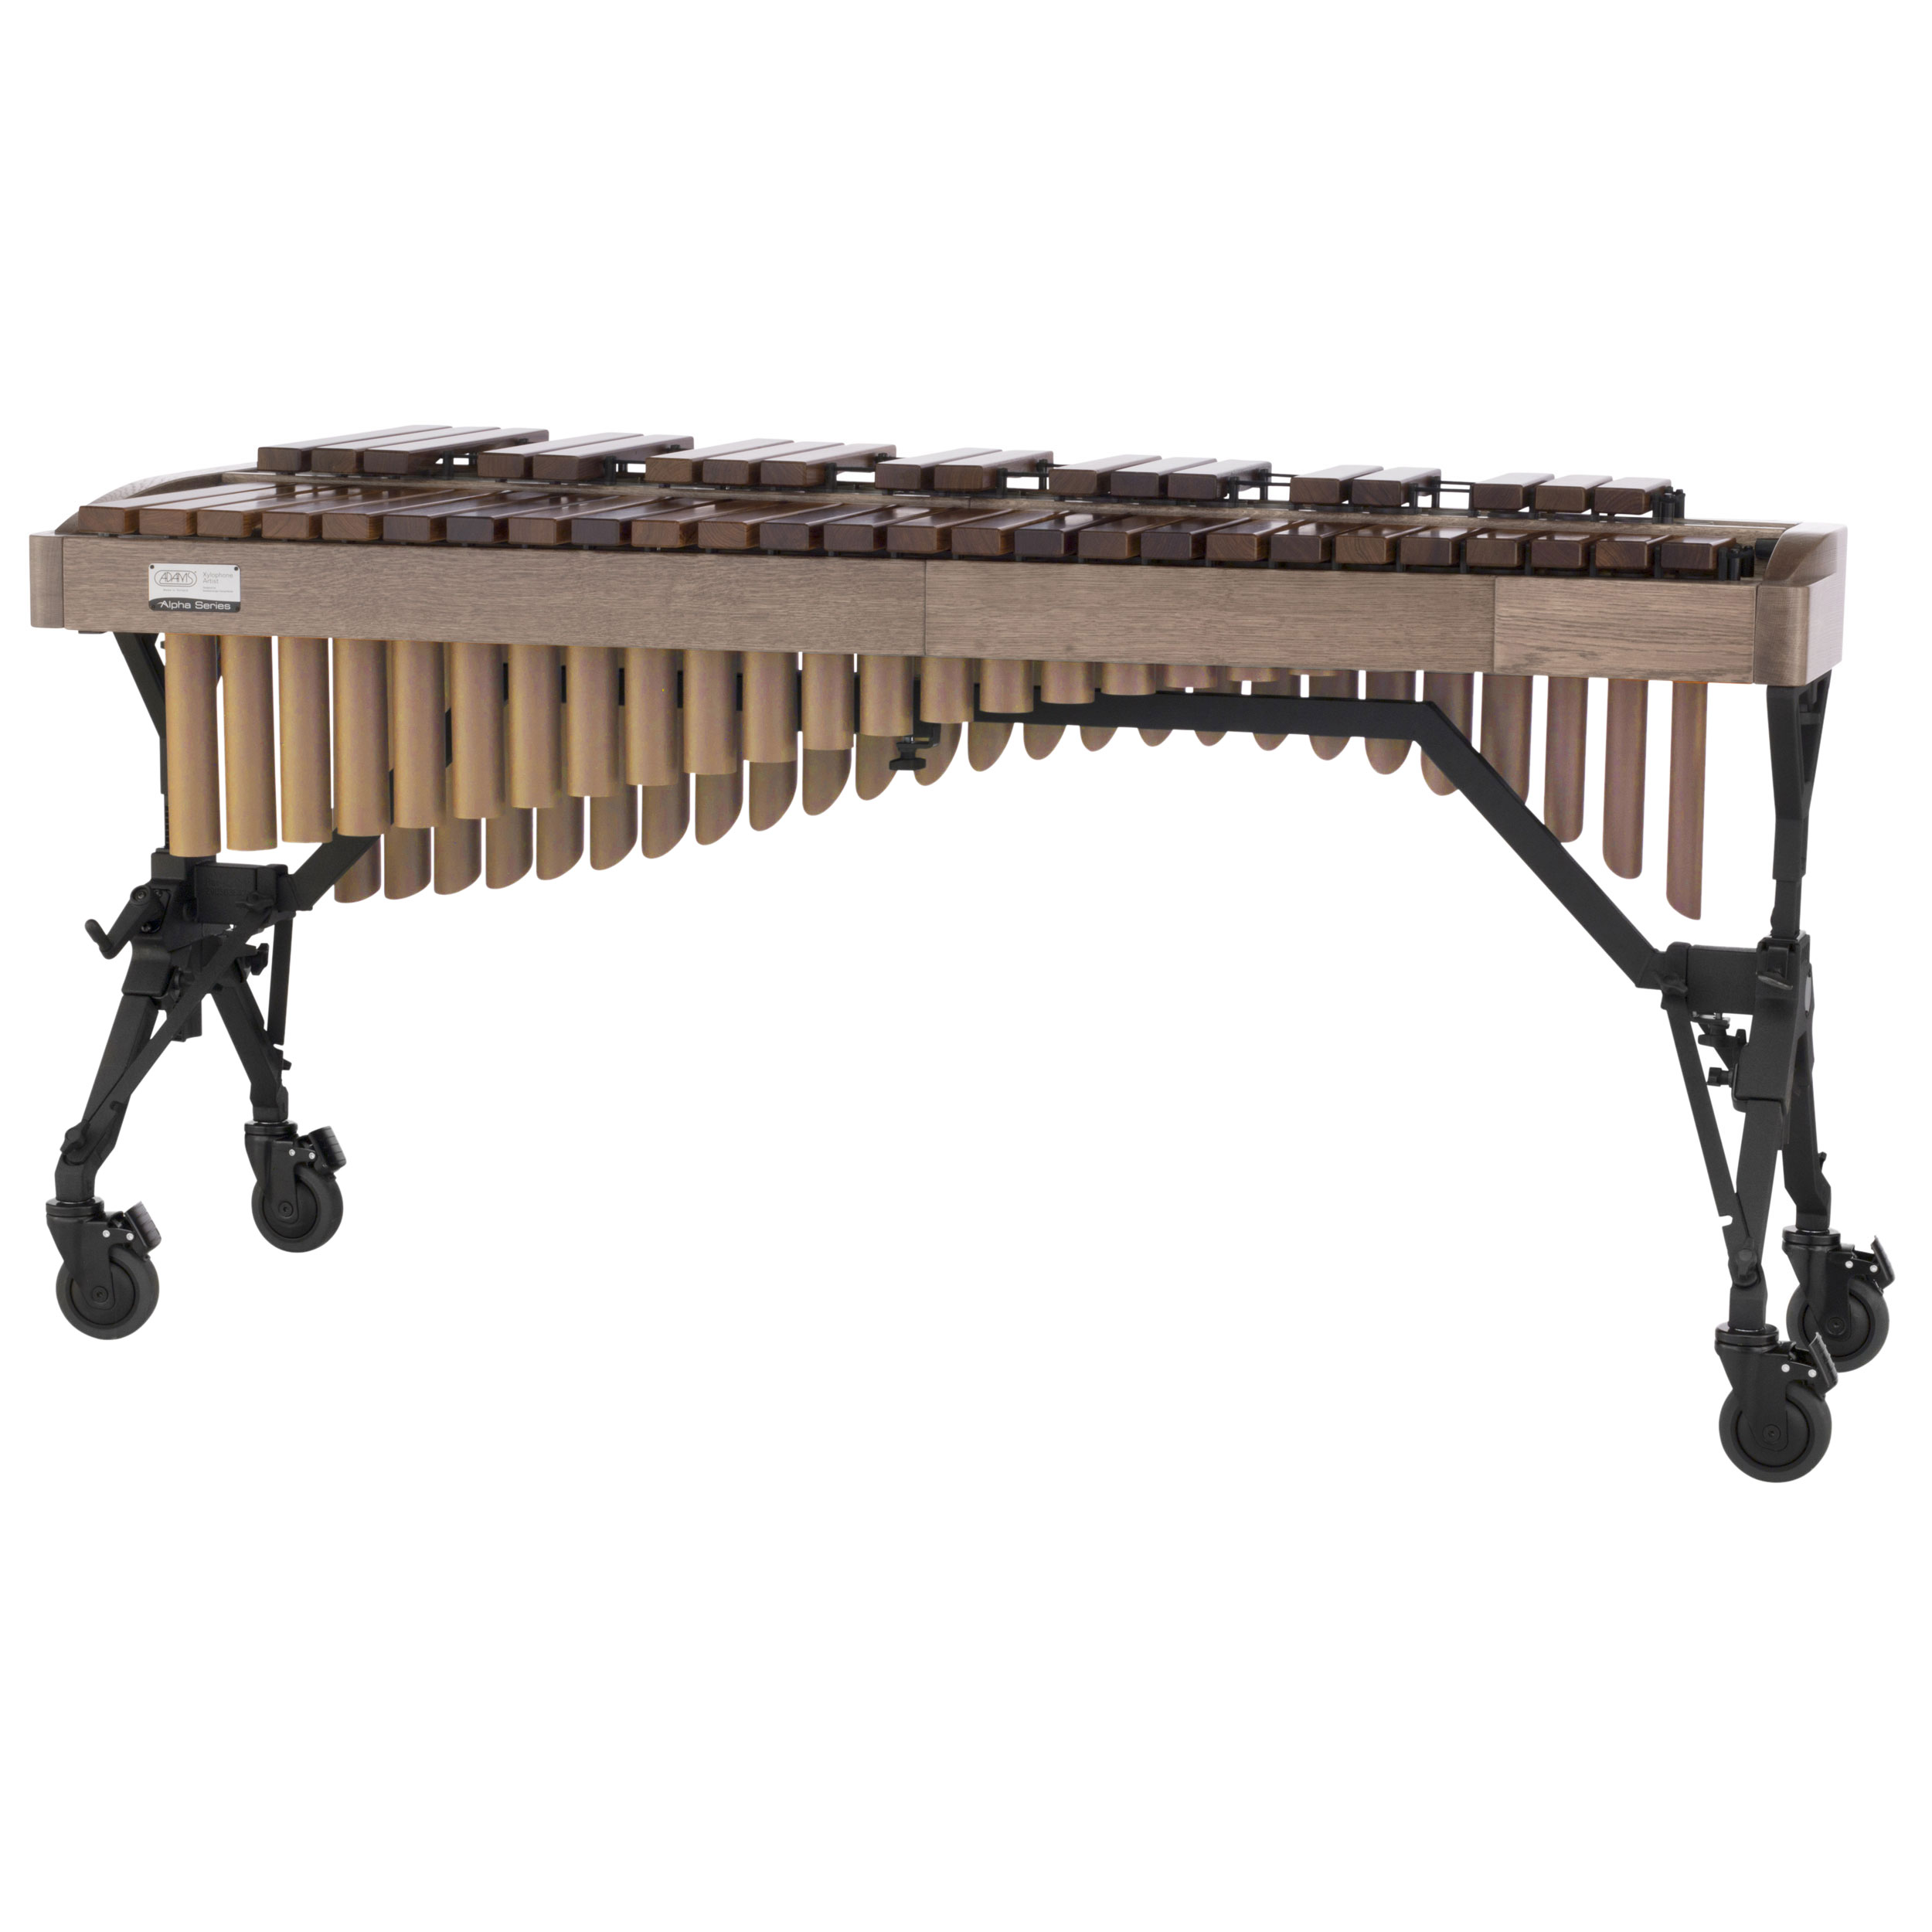 Adams 3.5 Octave Alpha Rosewood Xylophone with White Wash Oak Rails & Satin Gold Resonators